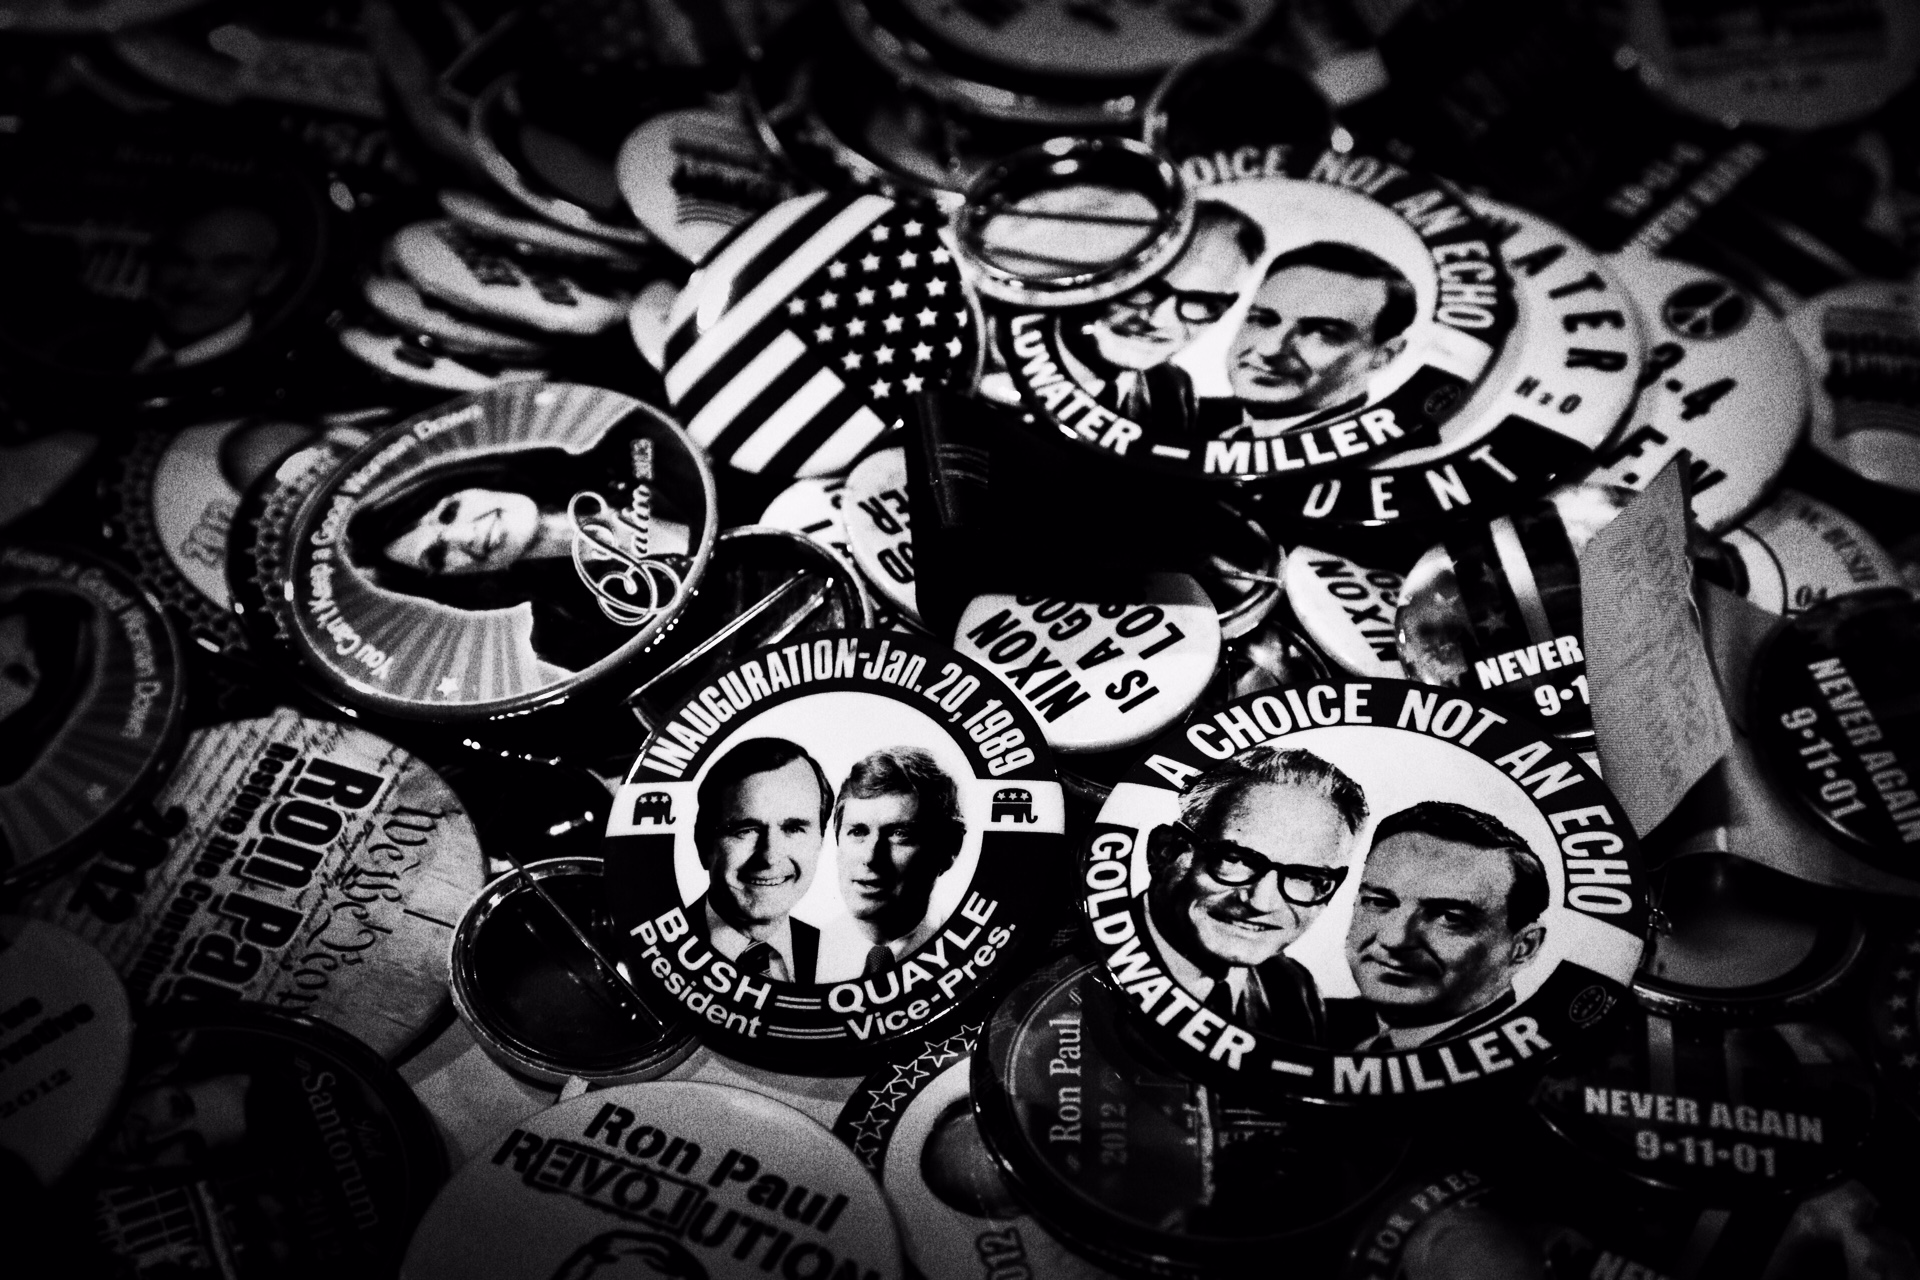 Buttons for past Republican campaigns on display at CPAC in National Harbor, Md. on Feb. 26, 2015.